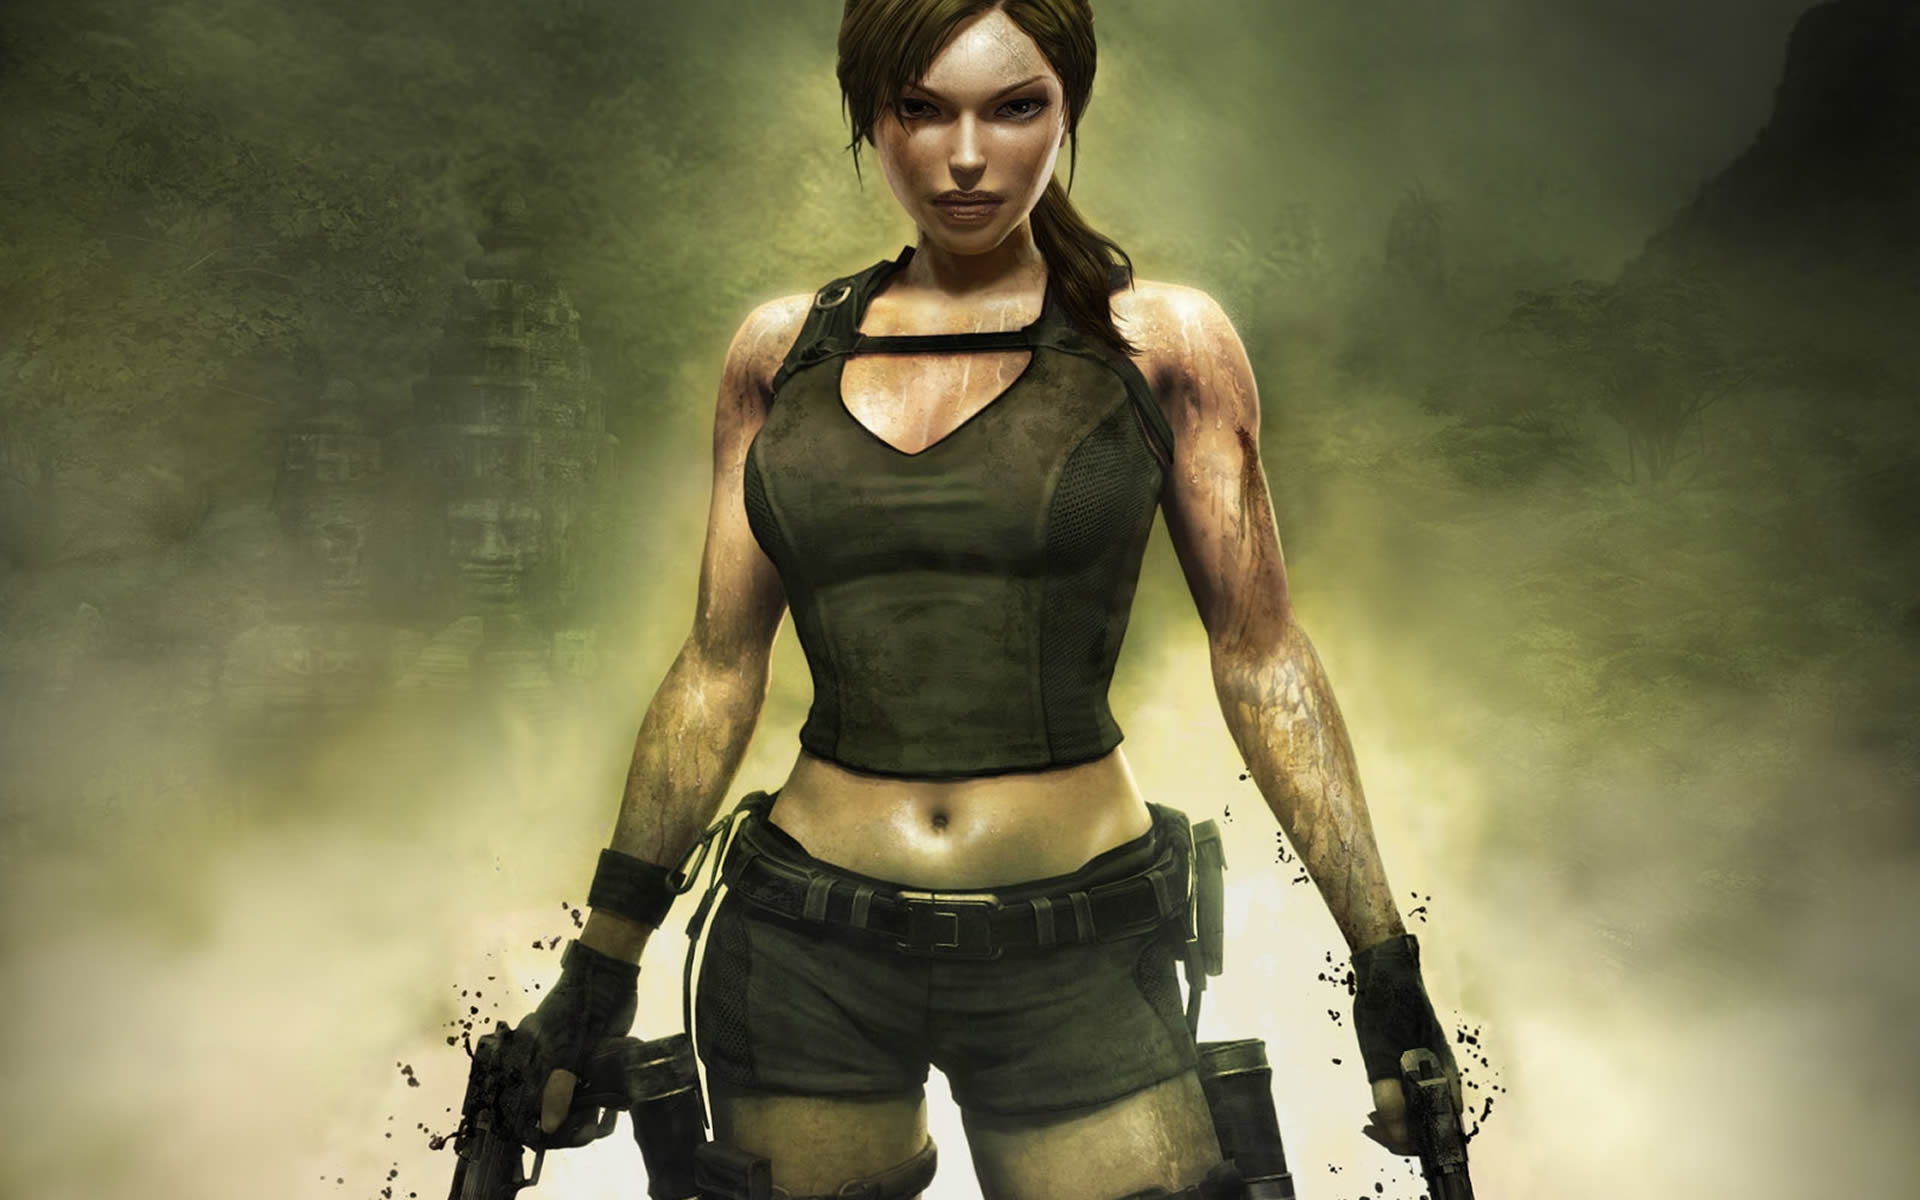 lara-croft-with-dual-pistols